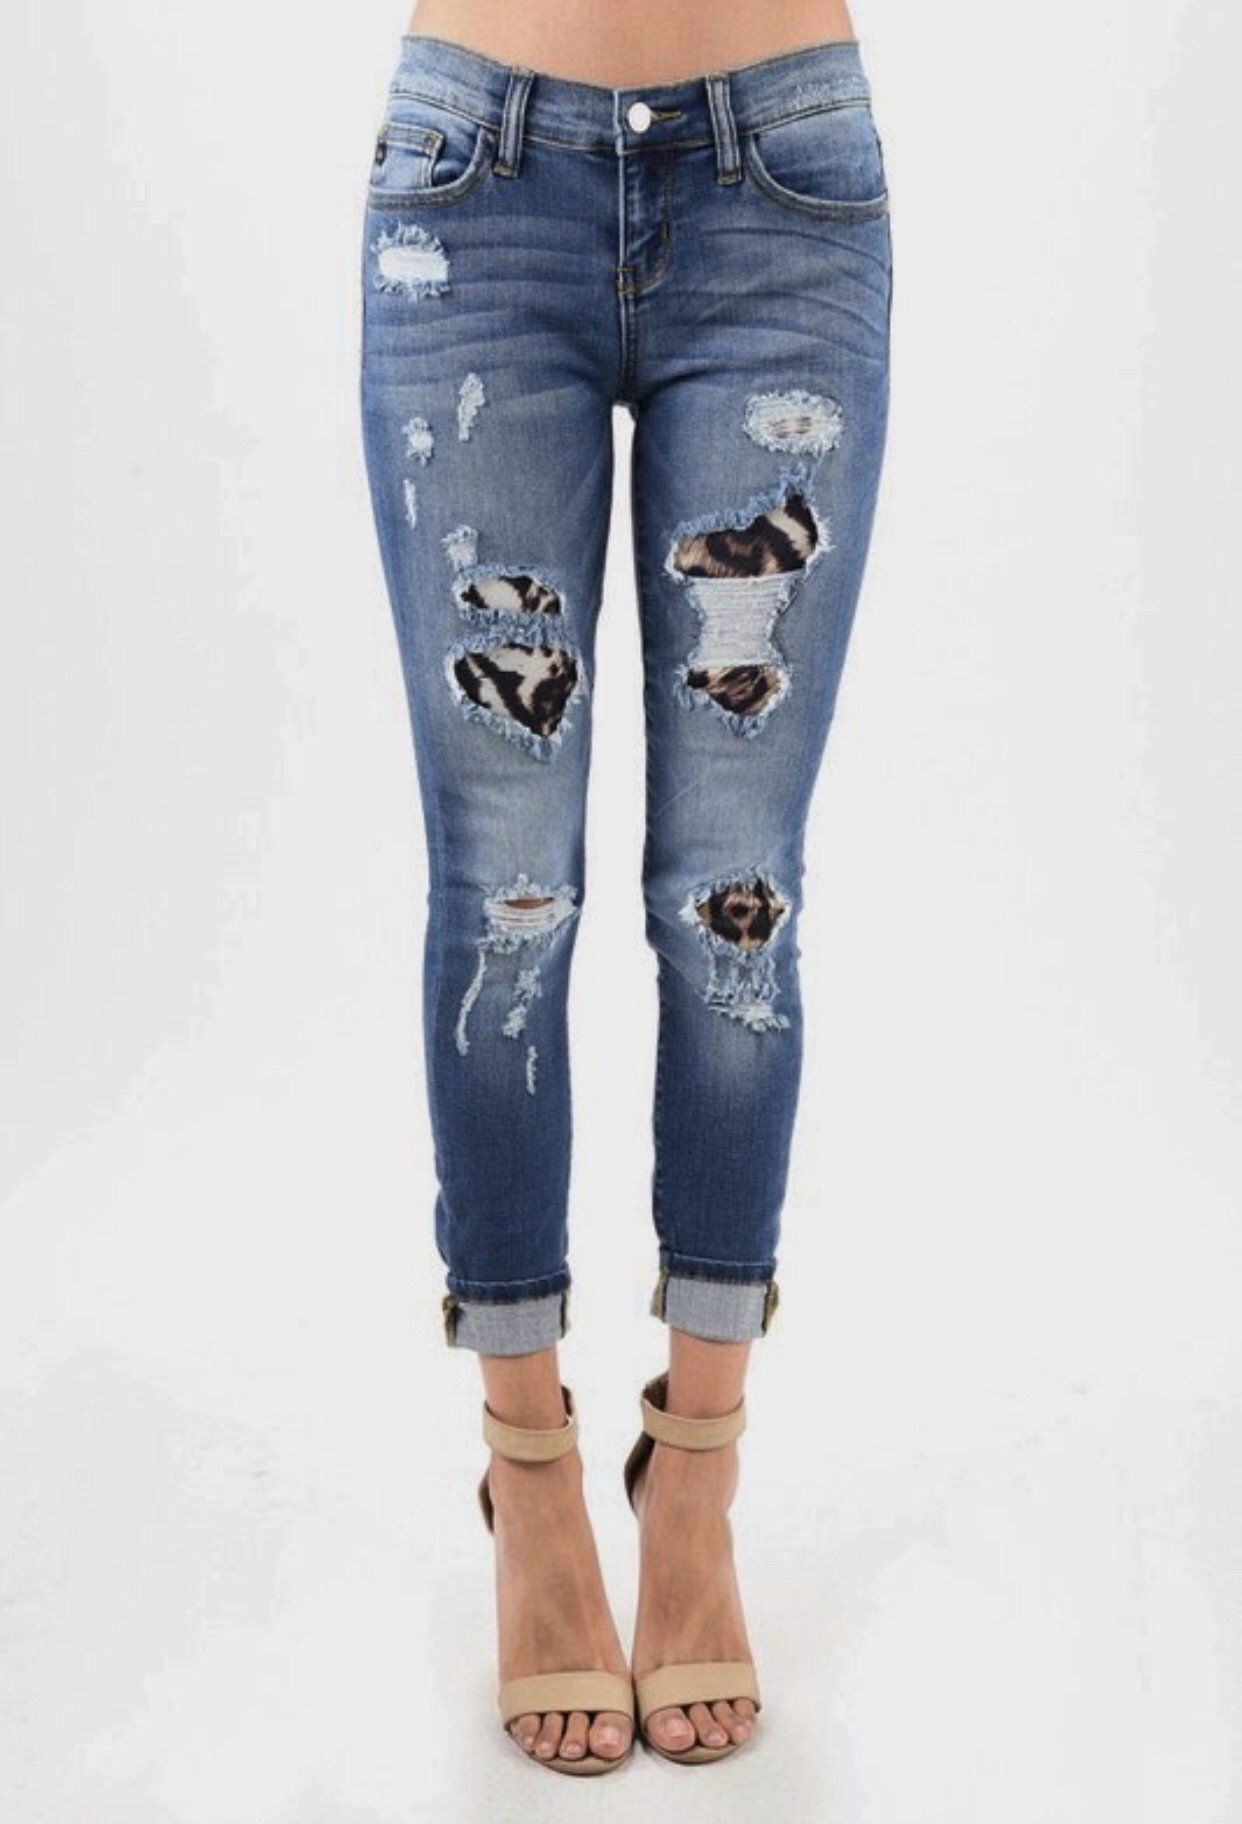 ed5c90c117f2 Leopard patch Judy blue jeans mid rise Ripped Jeans, Skinny Jeans, Tattered  Jeans,